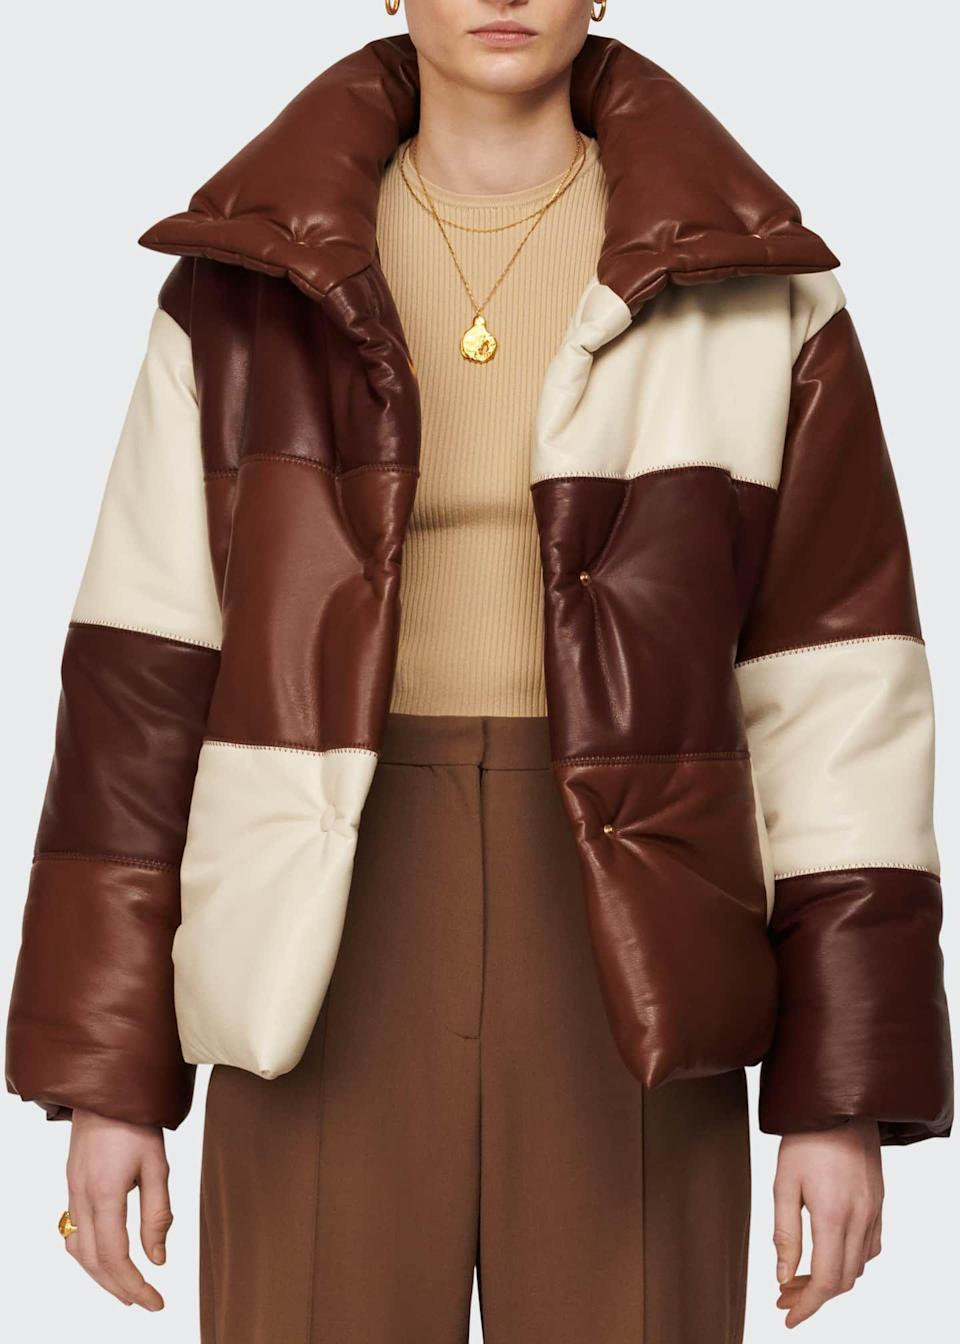 """<p><strong>Nanushka</strong></p><p>bergdorfgoodman.com</p><p><strong>$675.00</strong></p><p><a href=""""https://www.bergdorfgoodman.com/p/nanushka-hide-colorblock-puffer-coat-prod156760022"""" rel=""""nofollow noopener"""" target=""""_blank"""" data-ylk=""""slk:Shop Now"""" class=""""link rapid-noclick-resp"""">Shop Now</a></p><p>Looking for a new puffer in your life? Same. This colorblocked one is calling. </p>"""